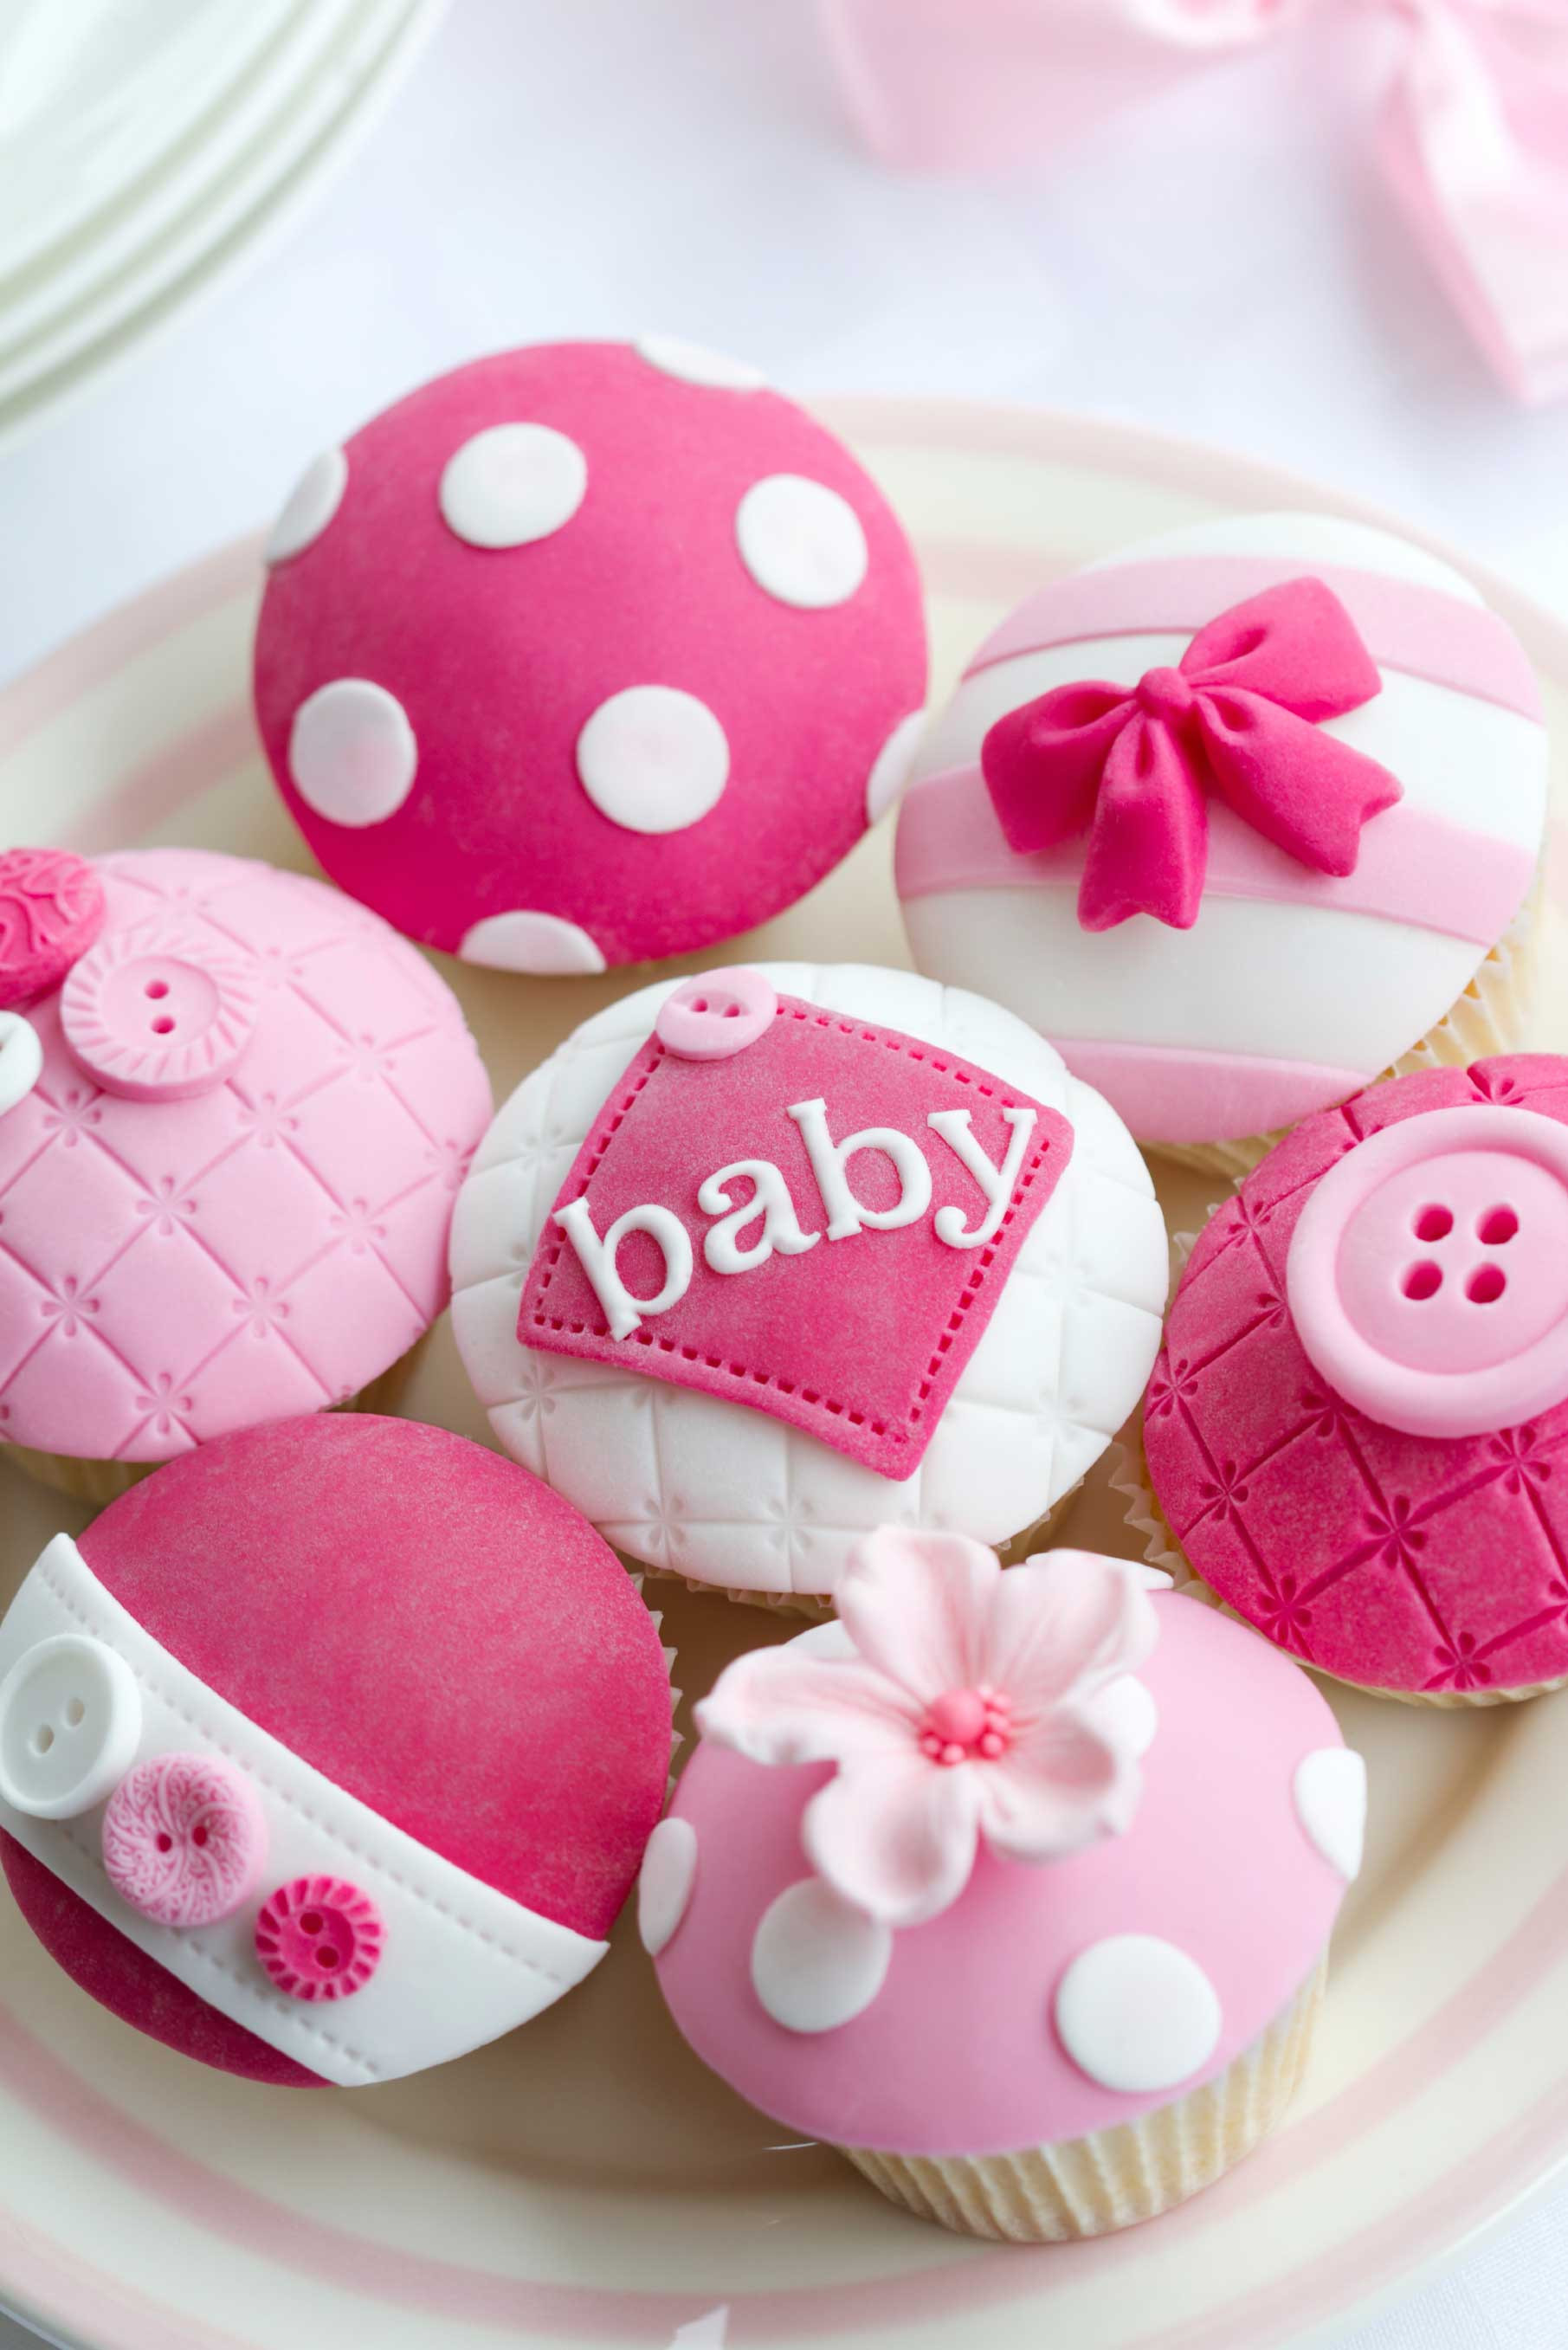 Girl Baby Shower Cupcakes  Baby Shower Cakes Gallery Pink Frosting Parties Team